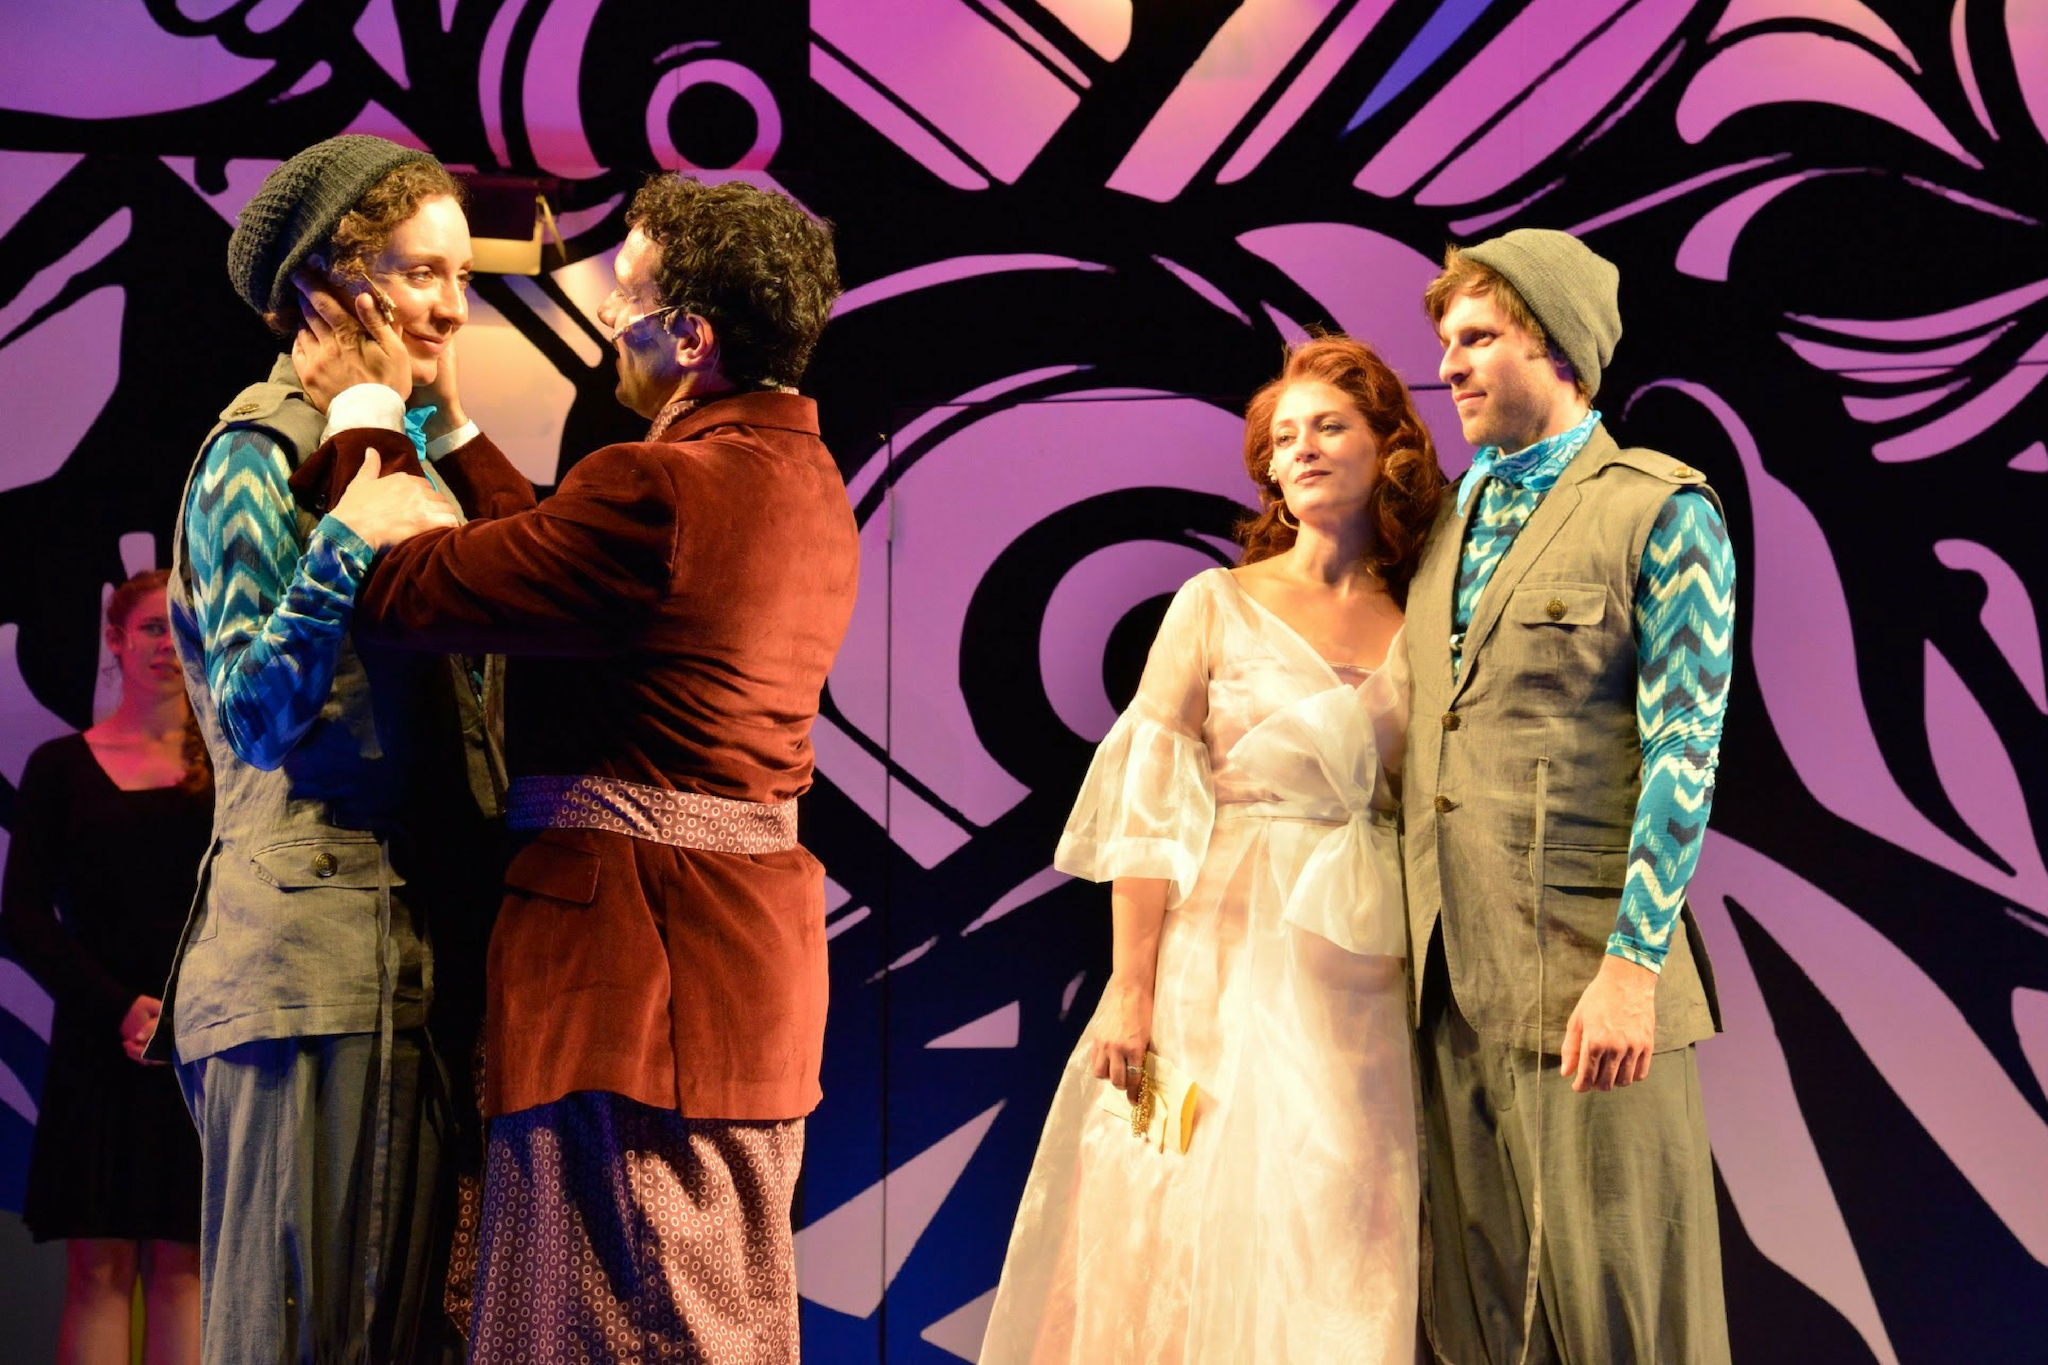 Marianna Bassham (Viola), Robert Najarian (Orsino), Kerry O'Malley (Olivia), and Nile Hawver (Sebastian) in Twelfth Night, Shakespeare on the Common 2014-Photo by Andrew Brilliant